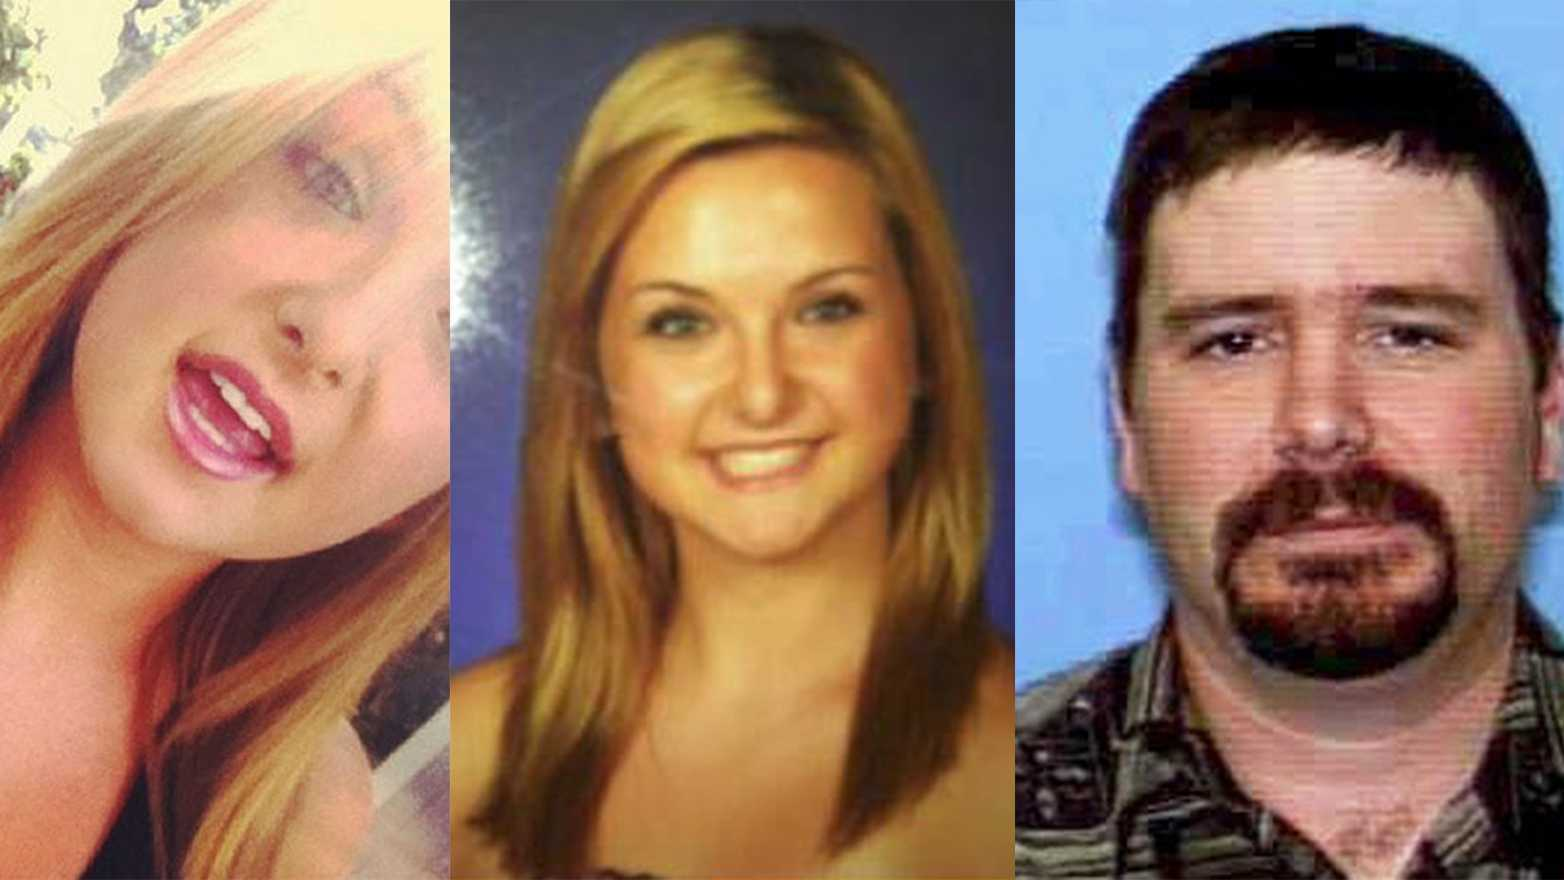 James Lee DiMaggio, right, is accused of kidnapping 16-year-old Hannah Anderson, left, after murdering her mother.